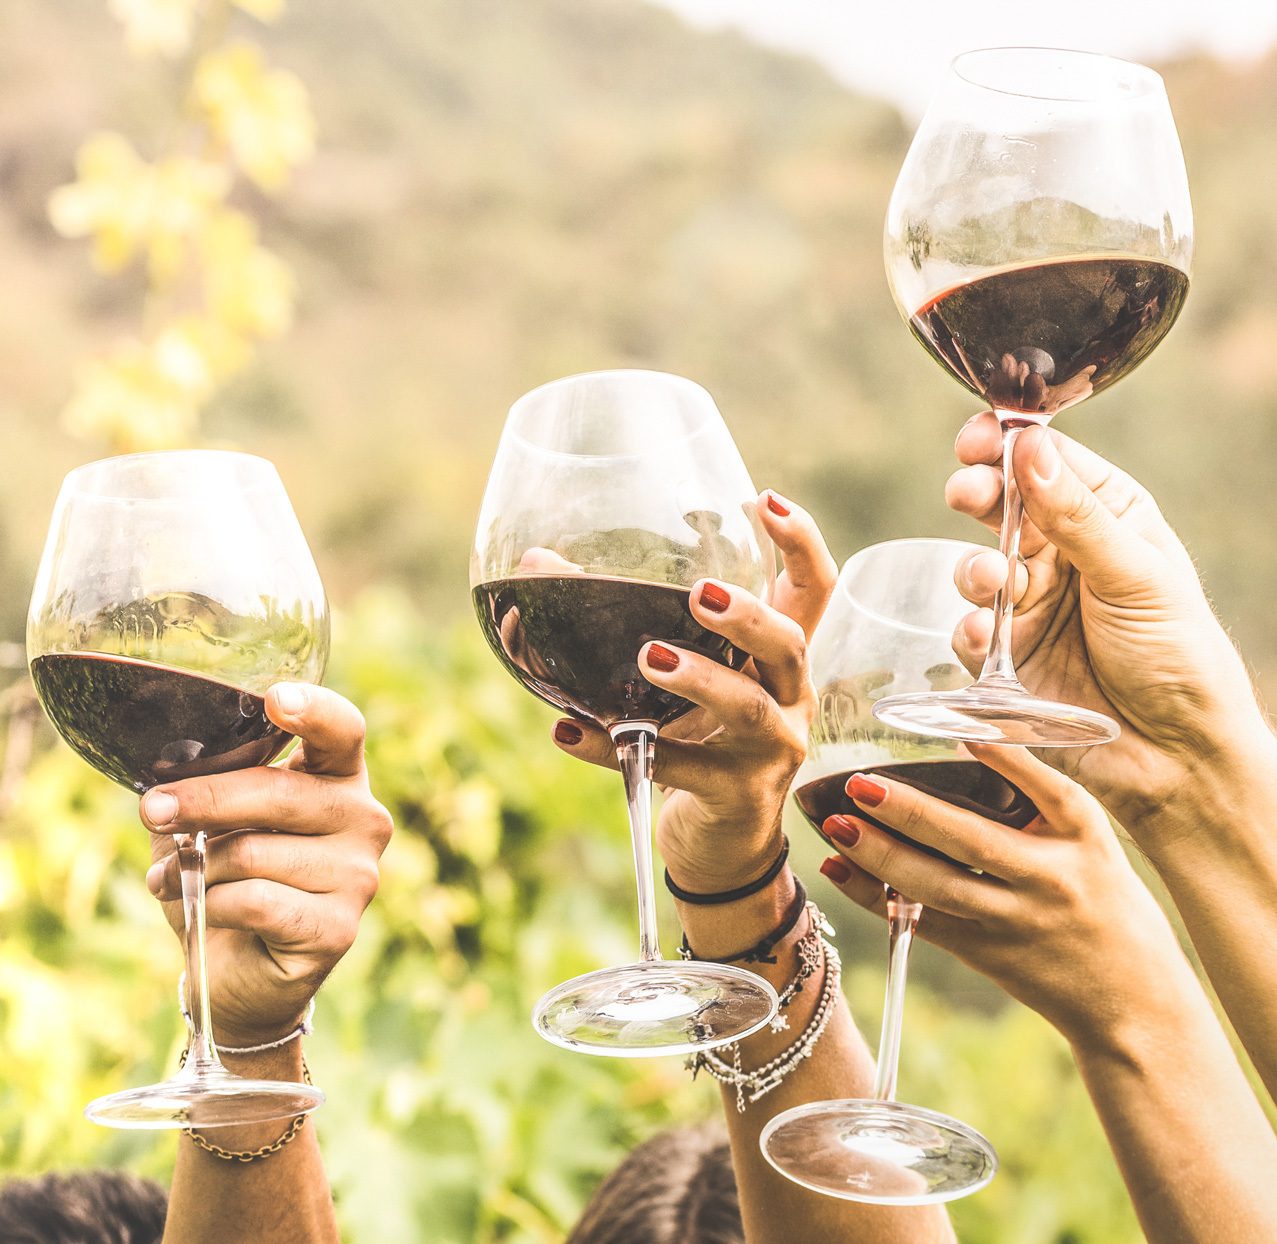 several hands holding up glasses of wine outdoors